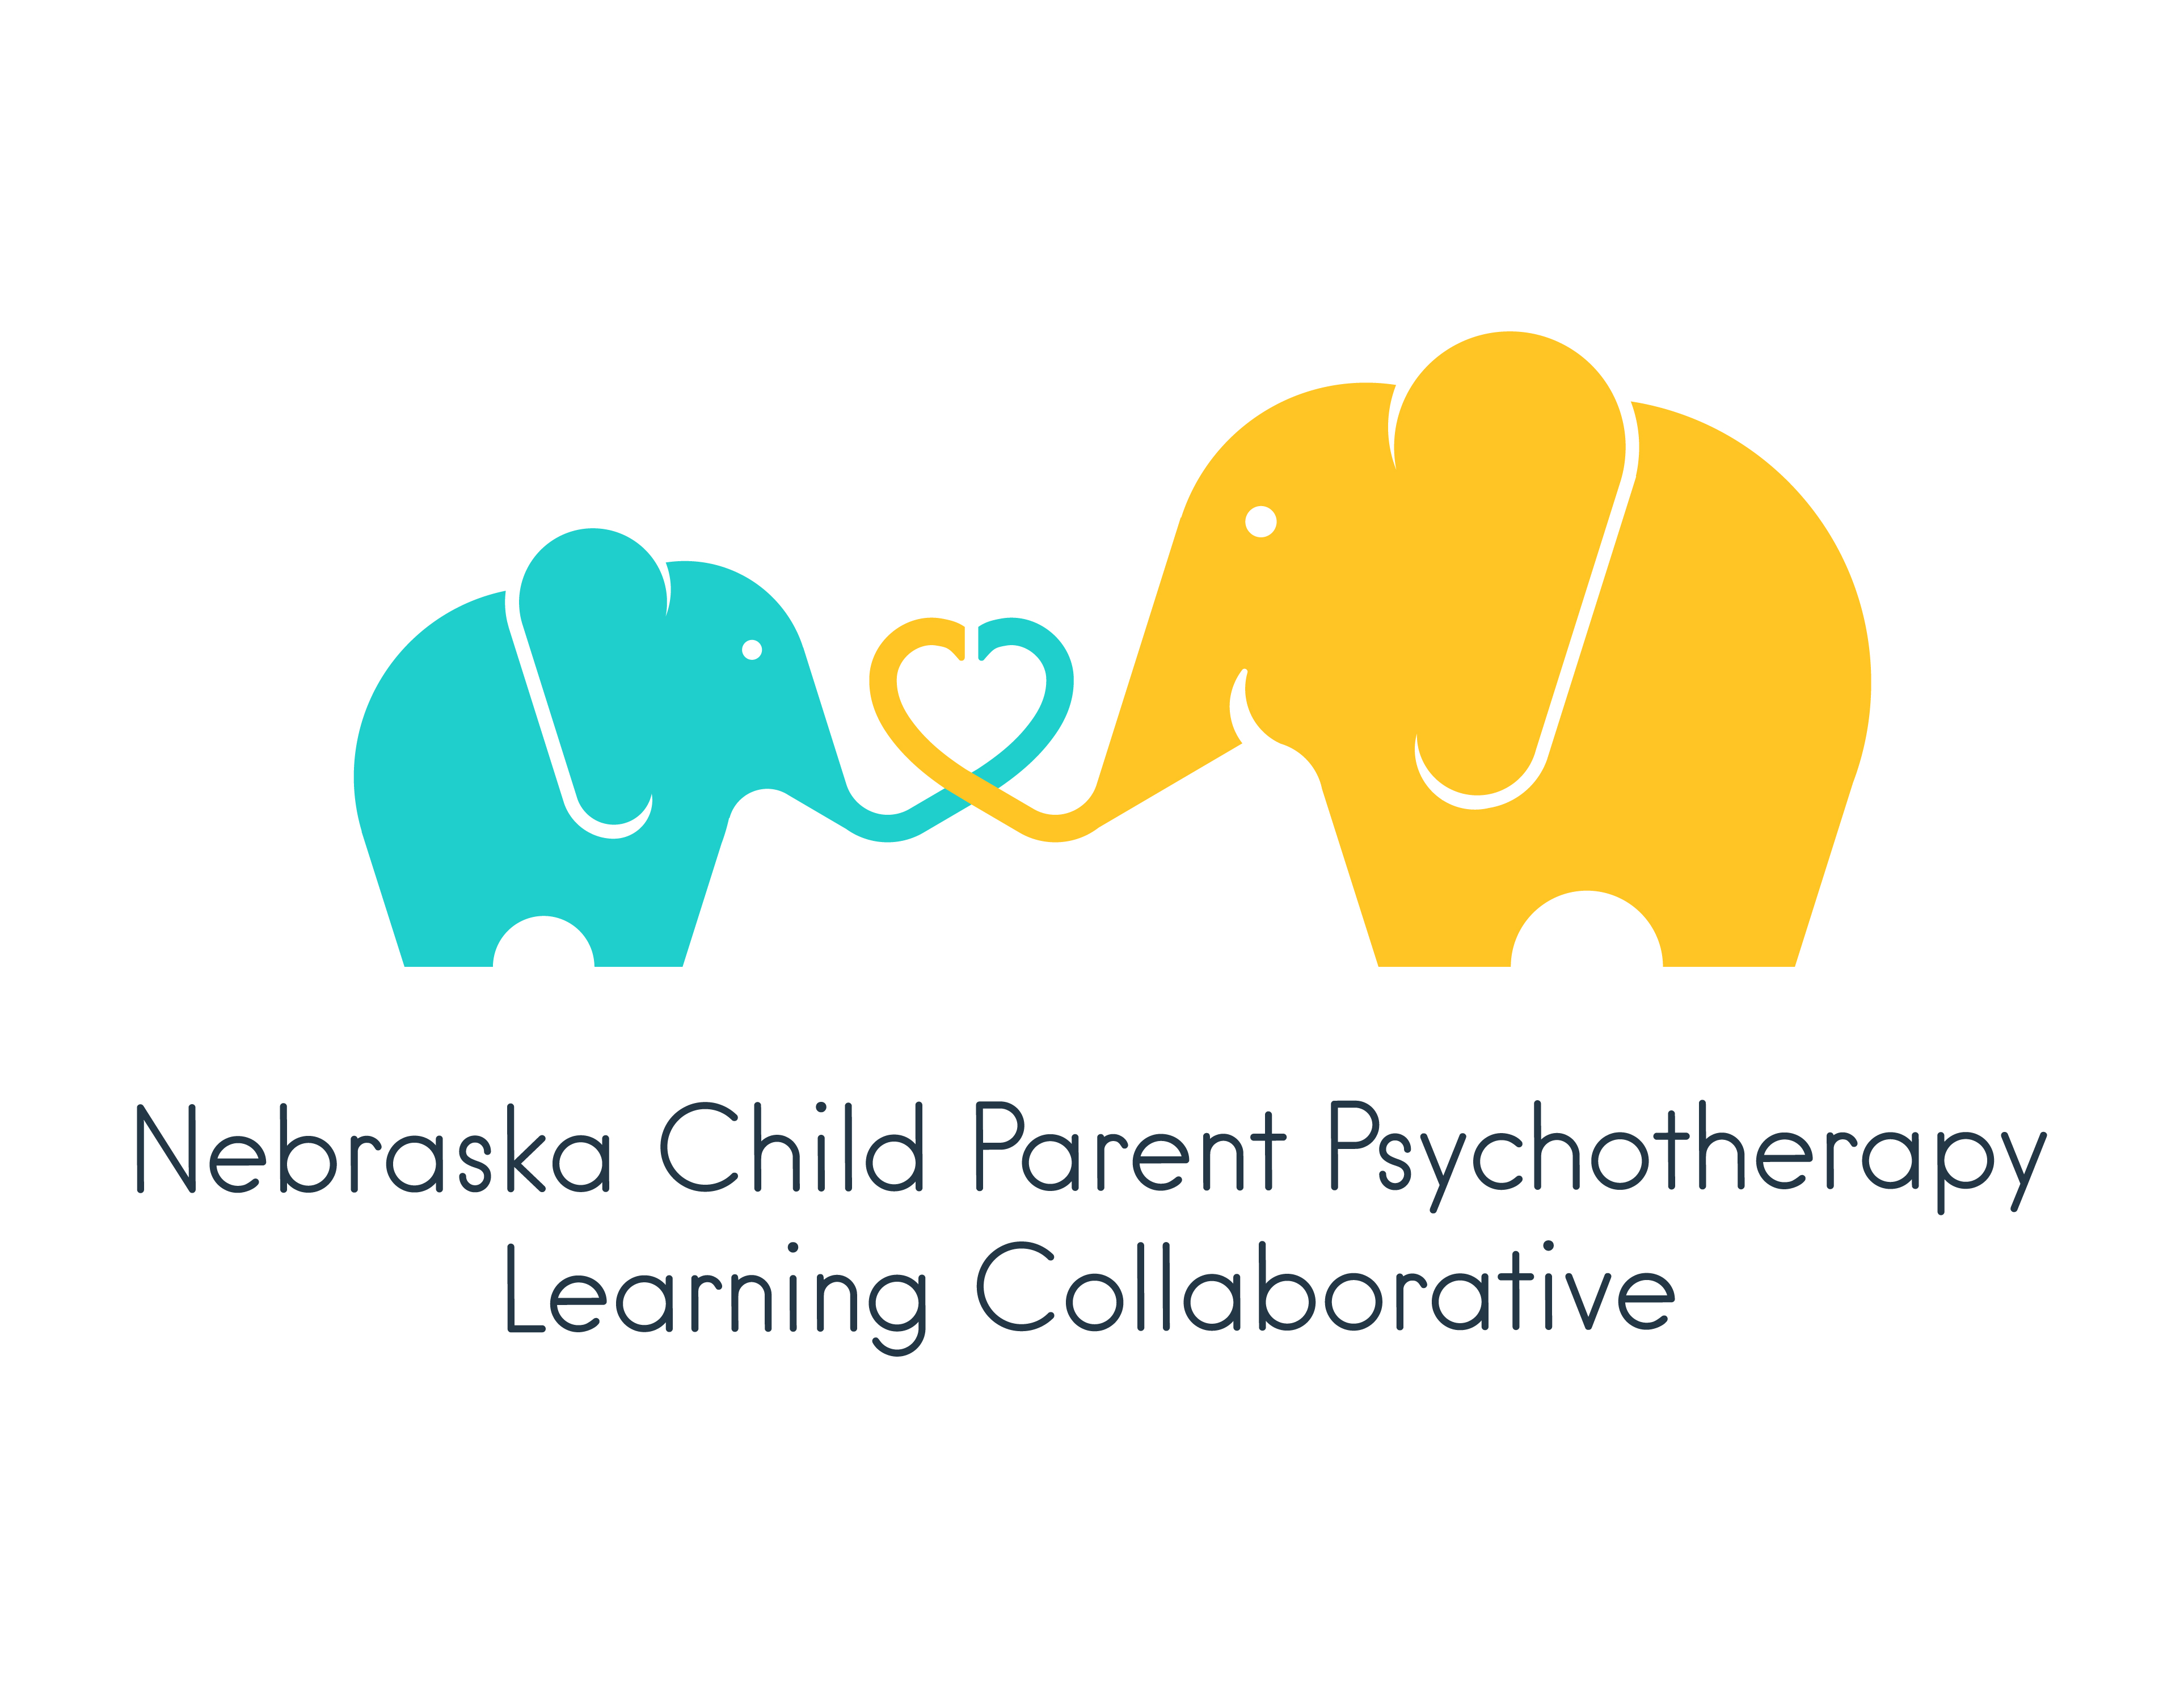 The Nebraska Child-Parent Psychotherapy Learning Collaborative